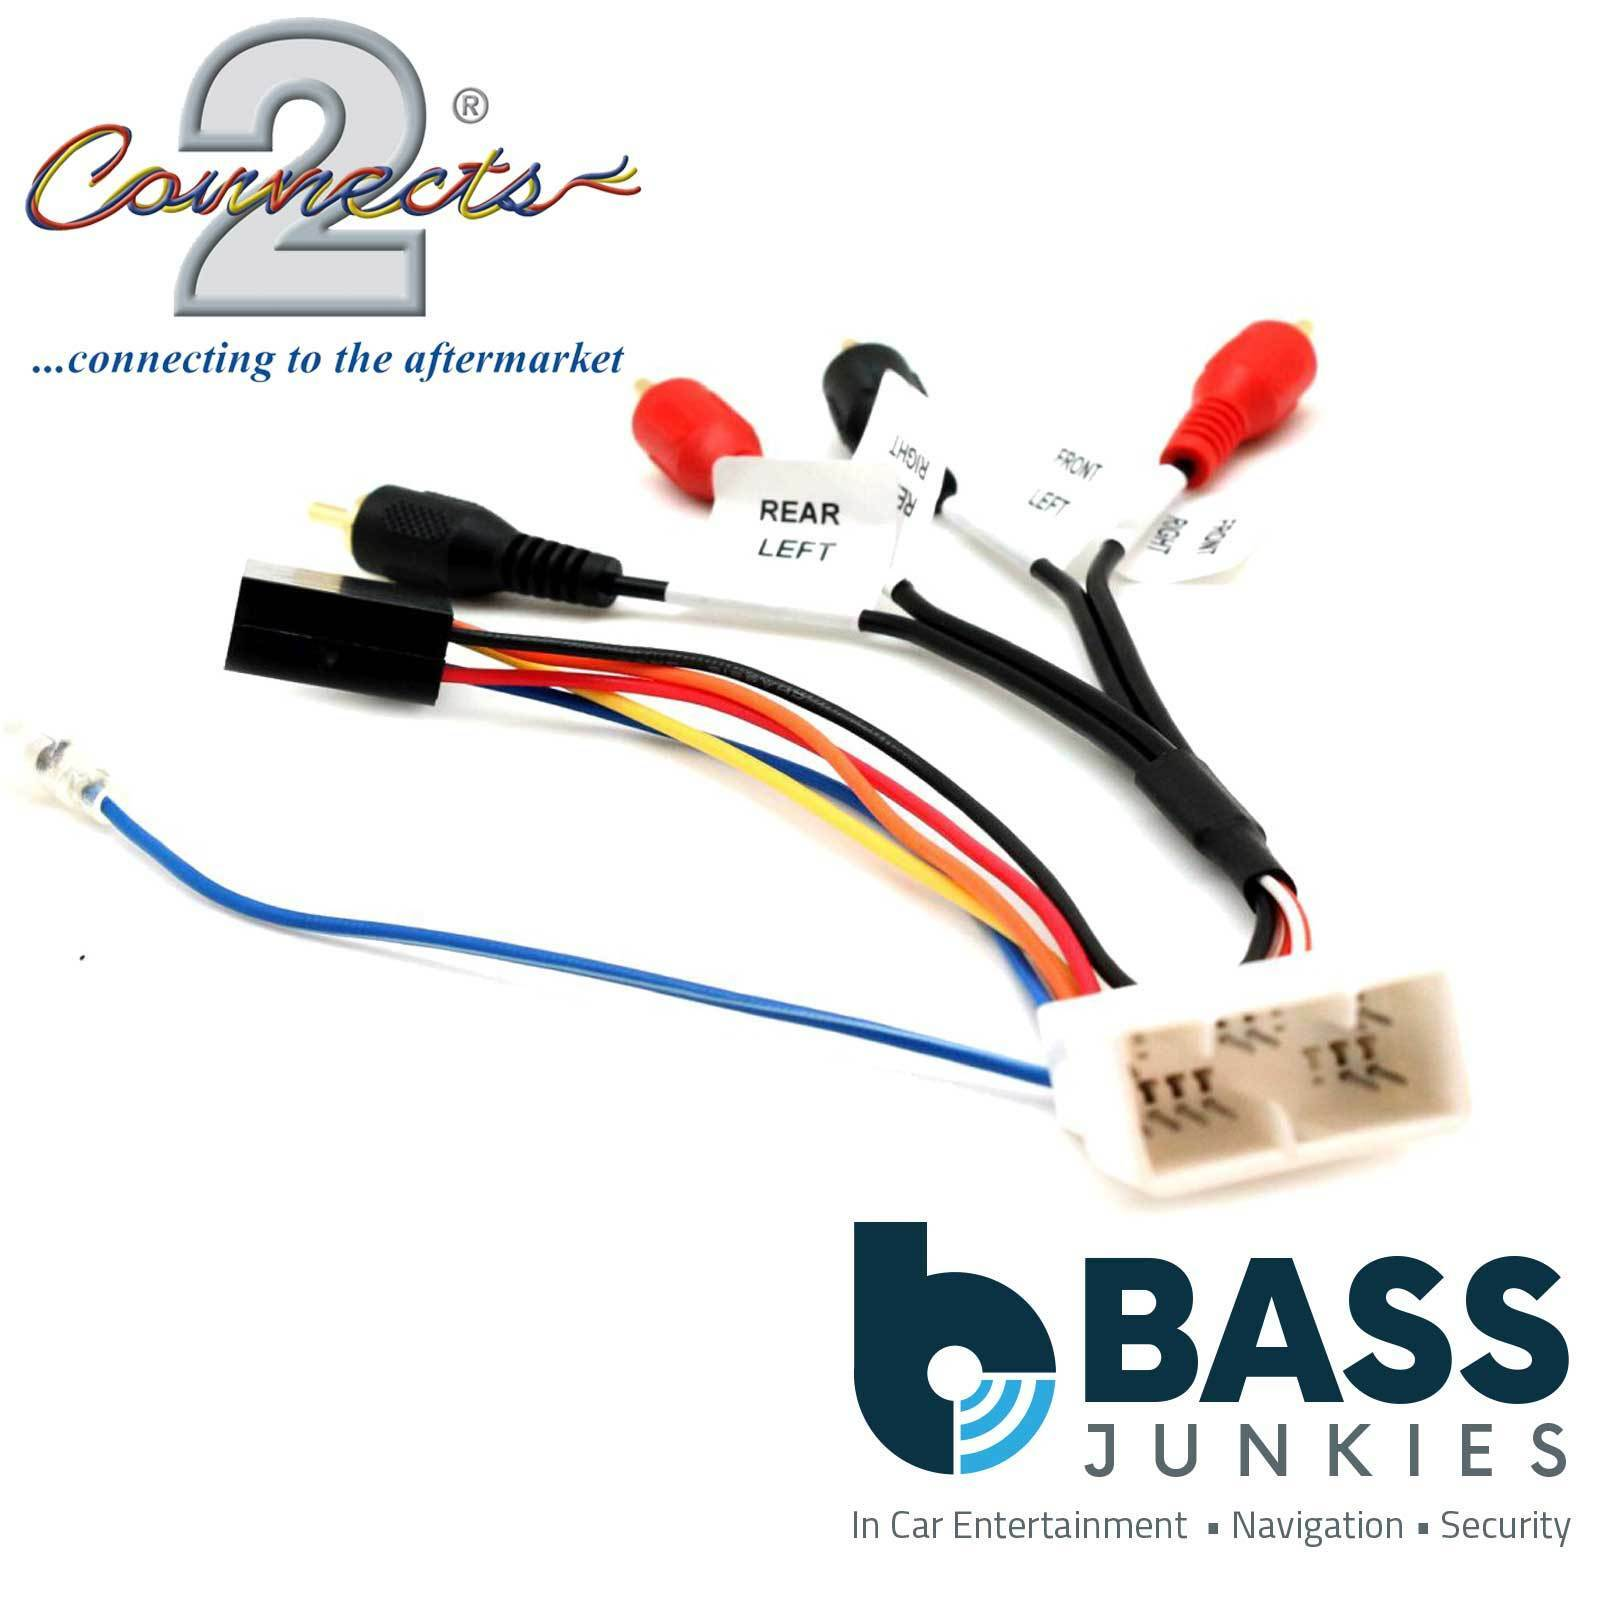 Connects2 Ct20lx02 Lexus All Models Car Stereo Iso Harness Adaptor Mercedes E Class Radio Wiring Adapter 1 Of 1free Shipping See More